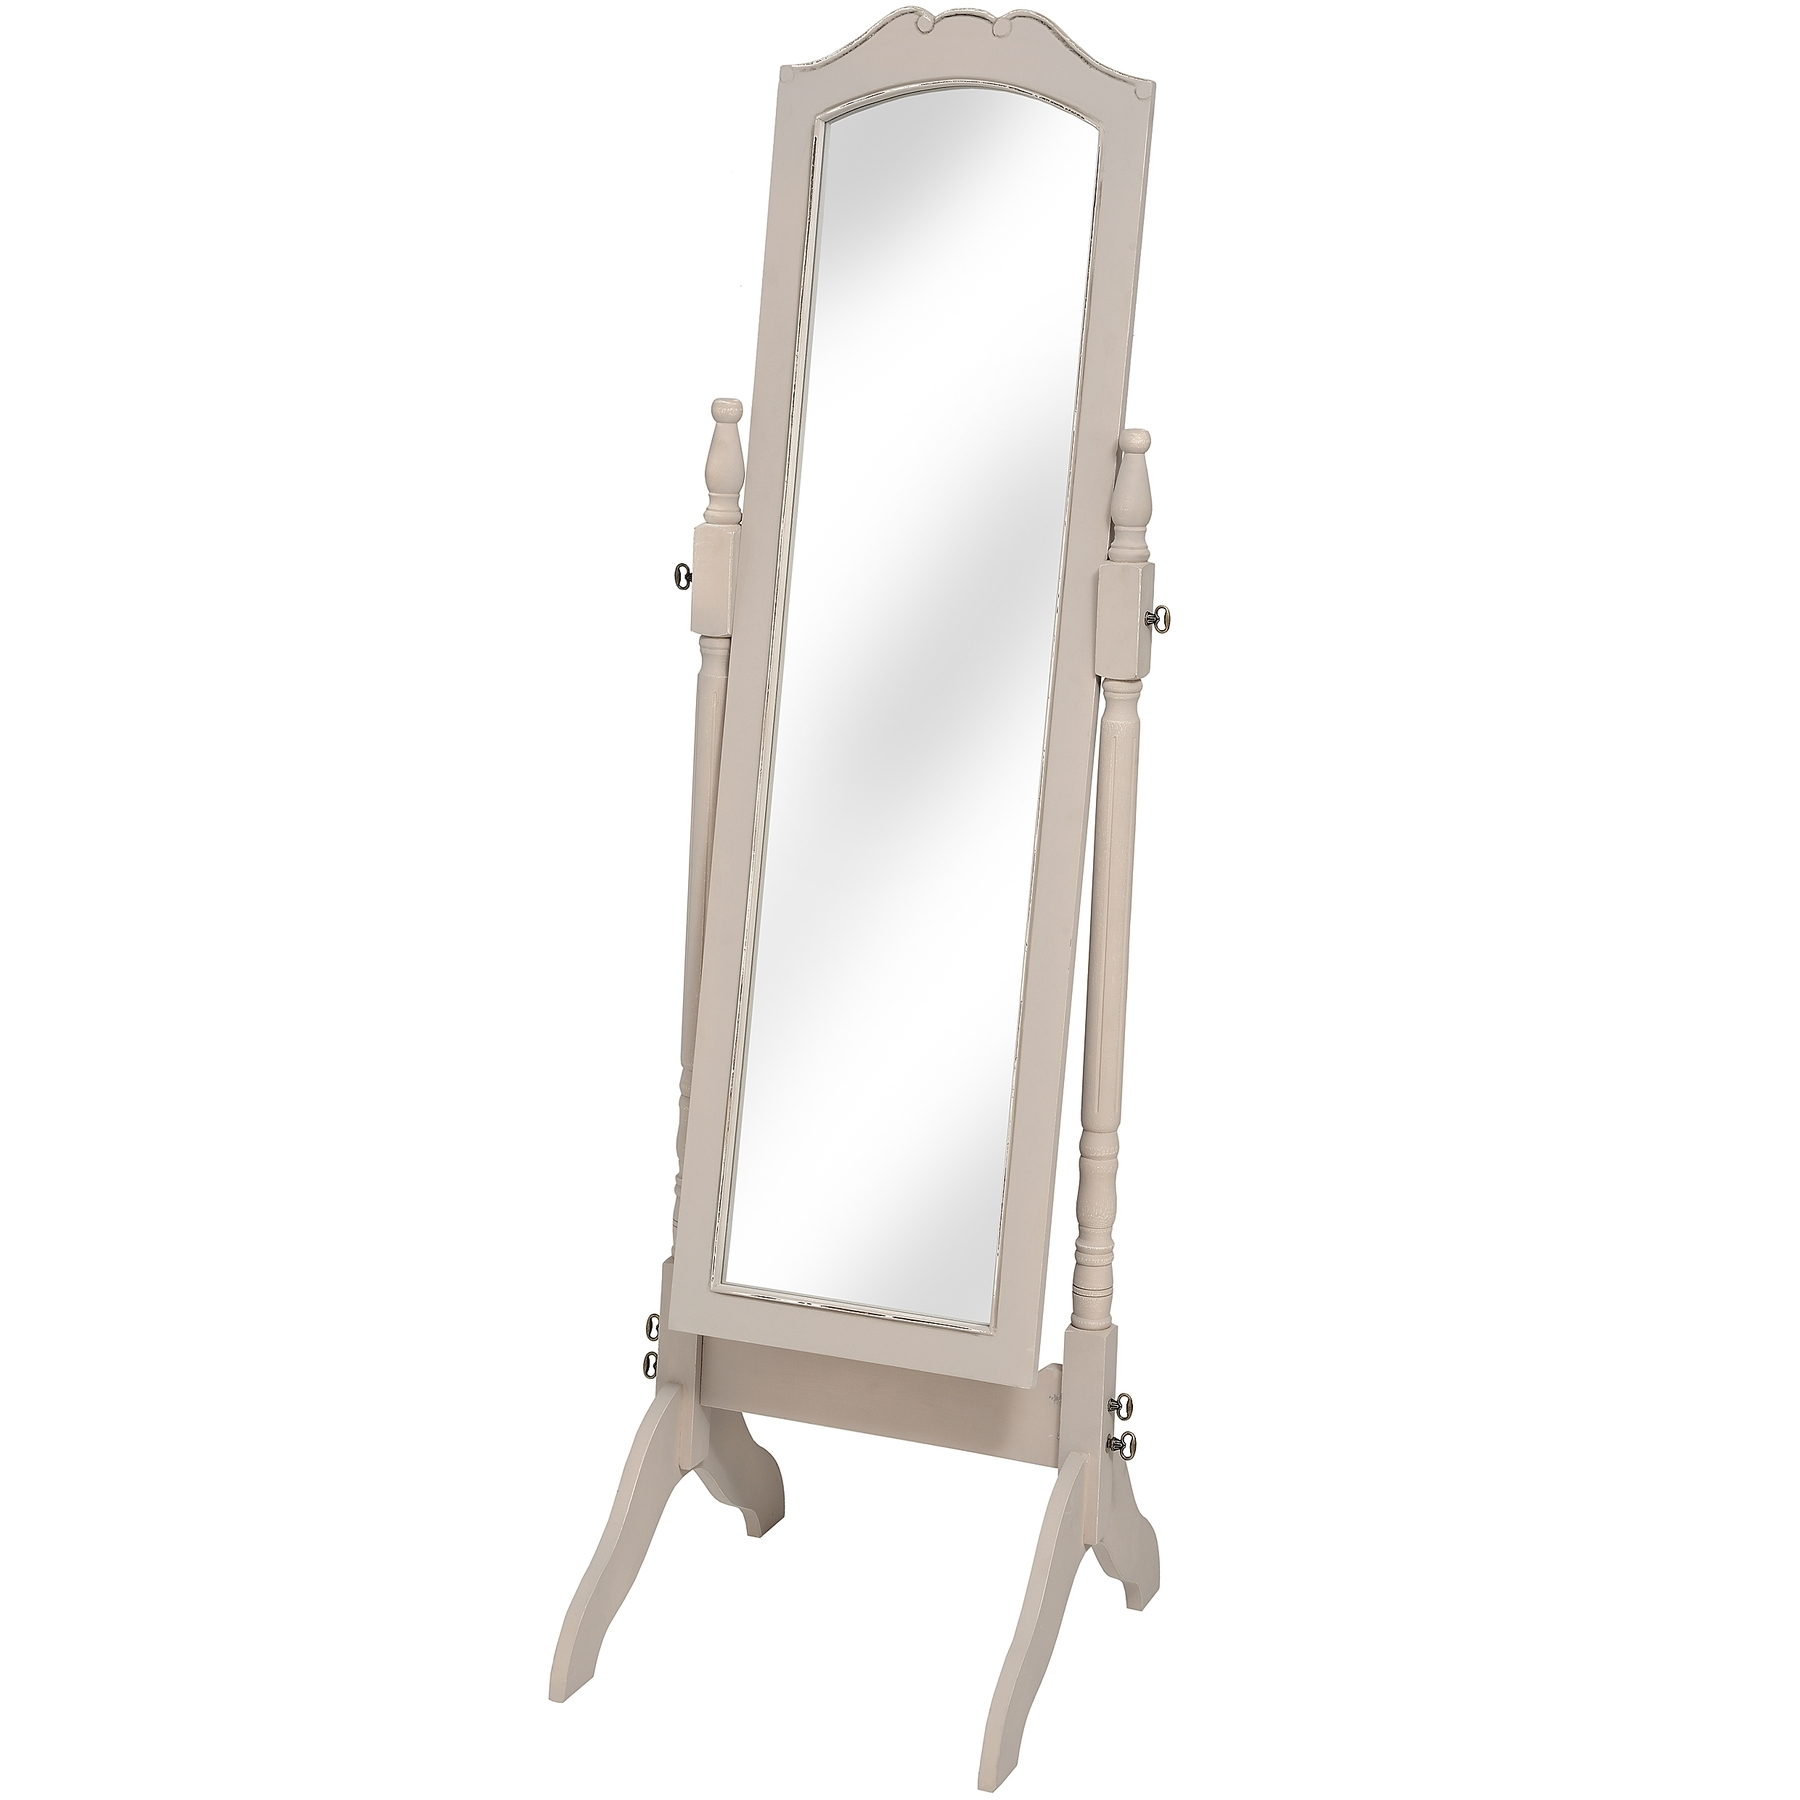 Floor Standing Mirror Standing Mirror And Louisiana On Pinterest Inside French Floor Standing Mirror (Image 13 of 15)